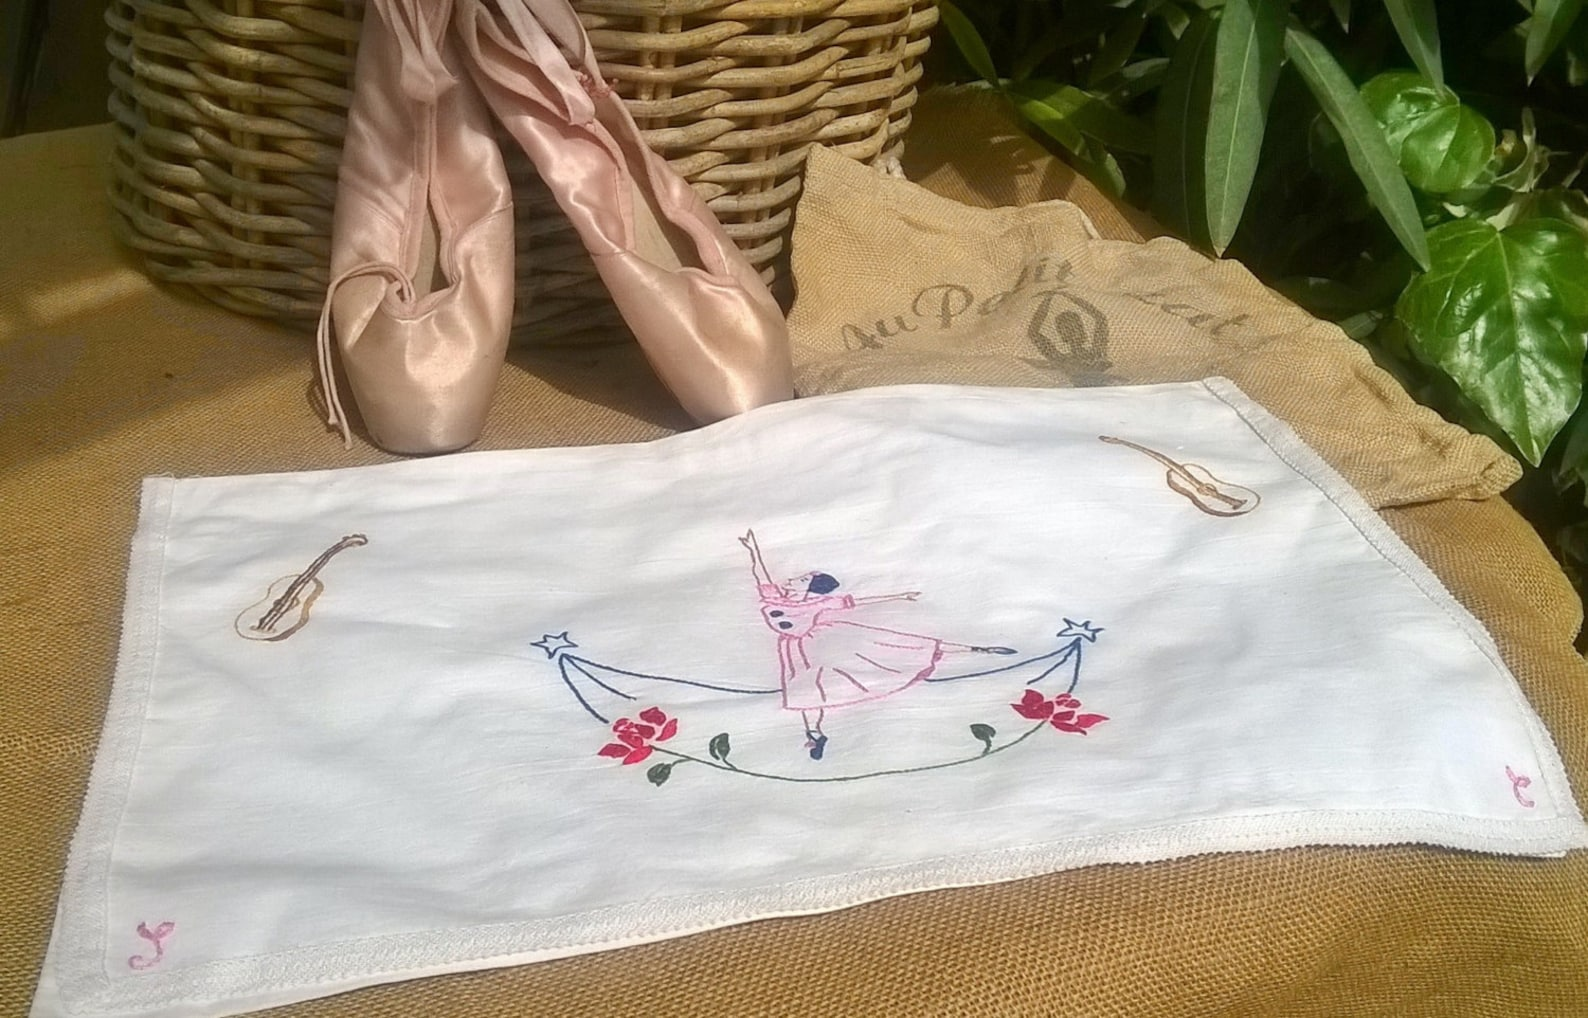 vintage white lingerie bag french cotton ballet dancer embroidered lingerie case nightgown pajama bag #sophieladydeparis